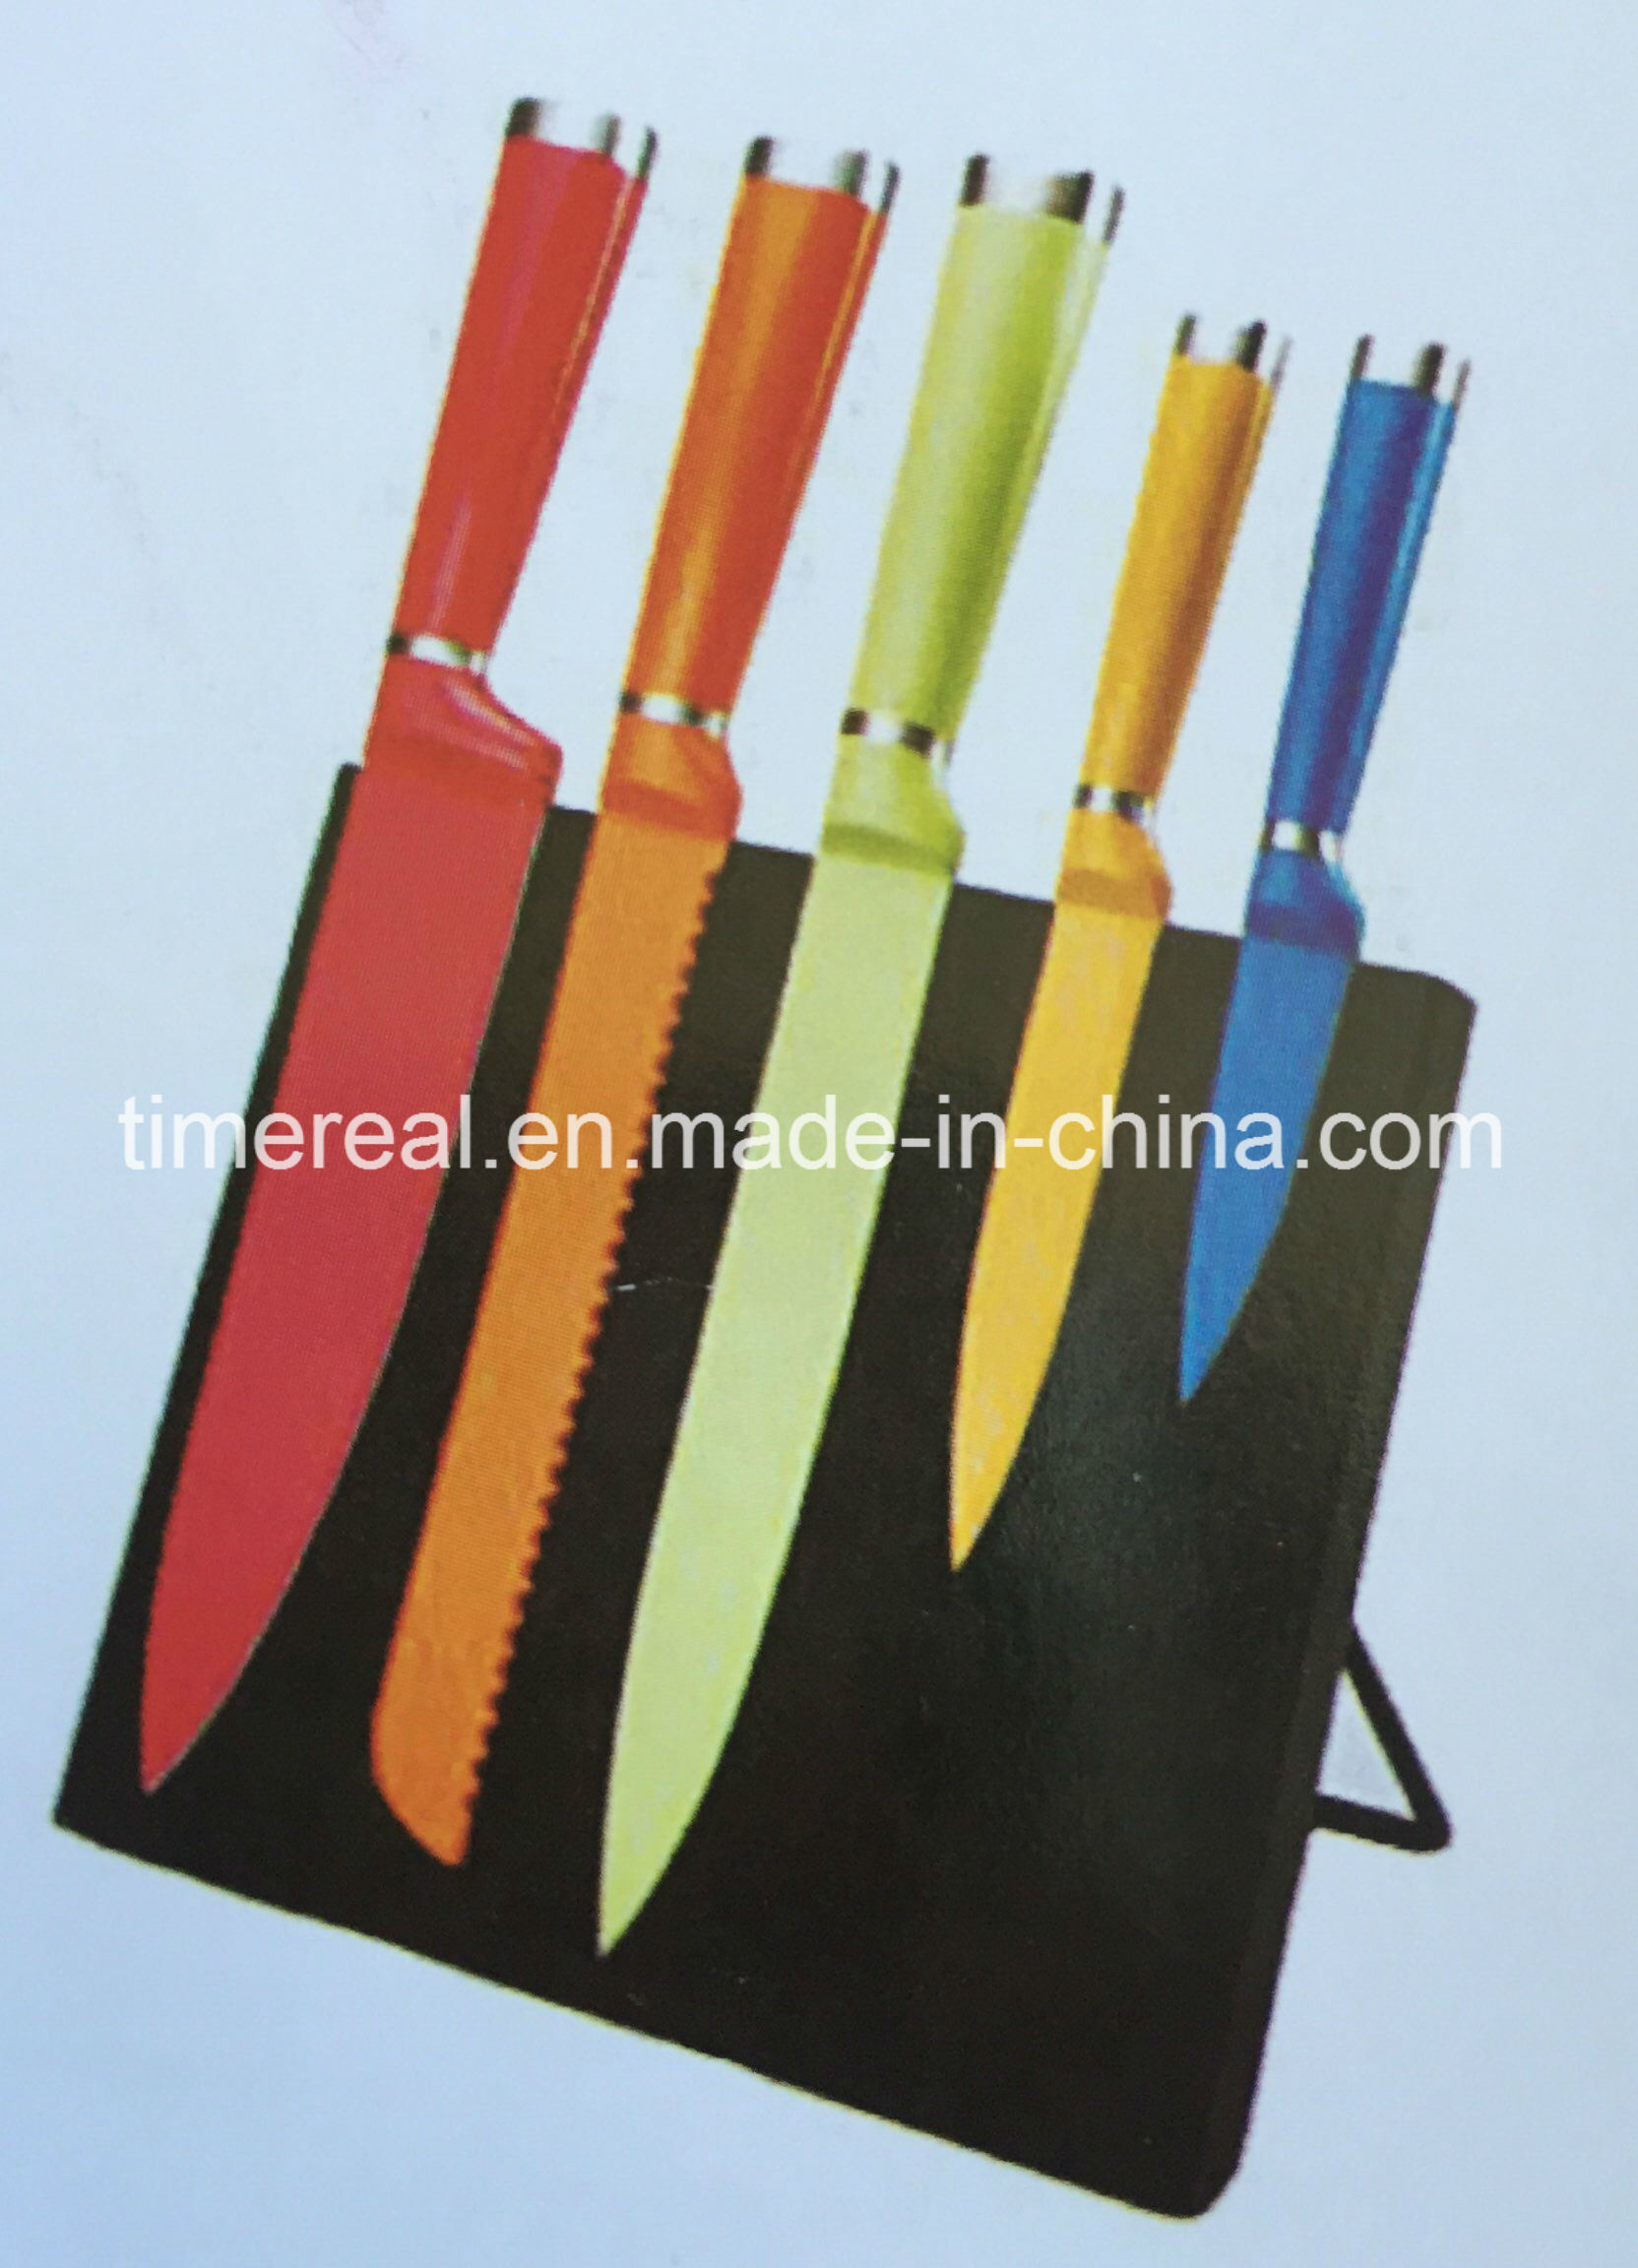 Stainless Steel Kitchen Knives Set with Painting No. Fj-0058